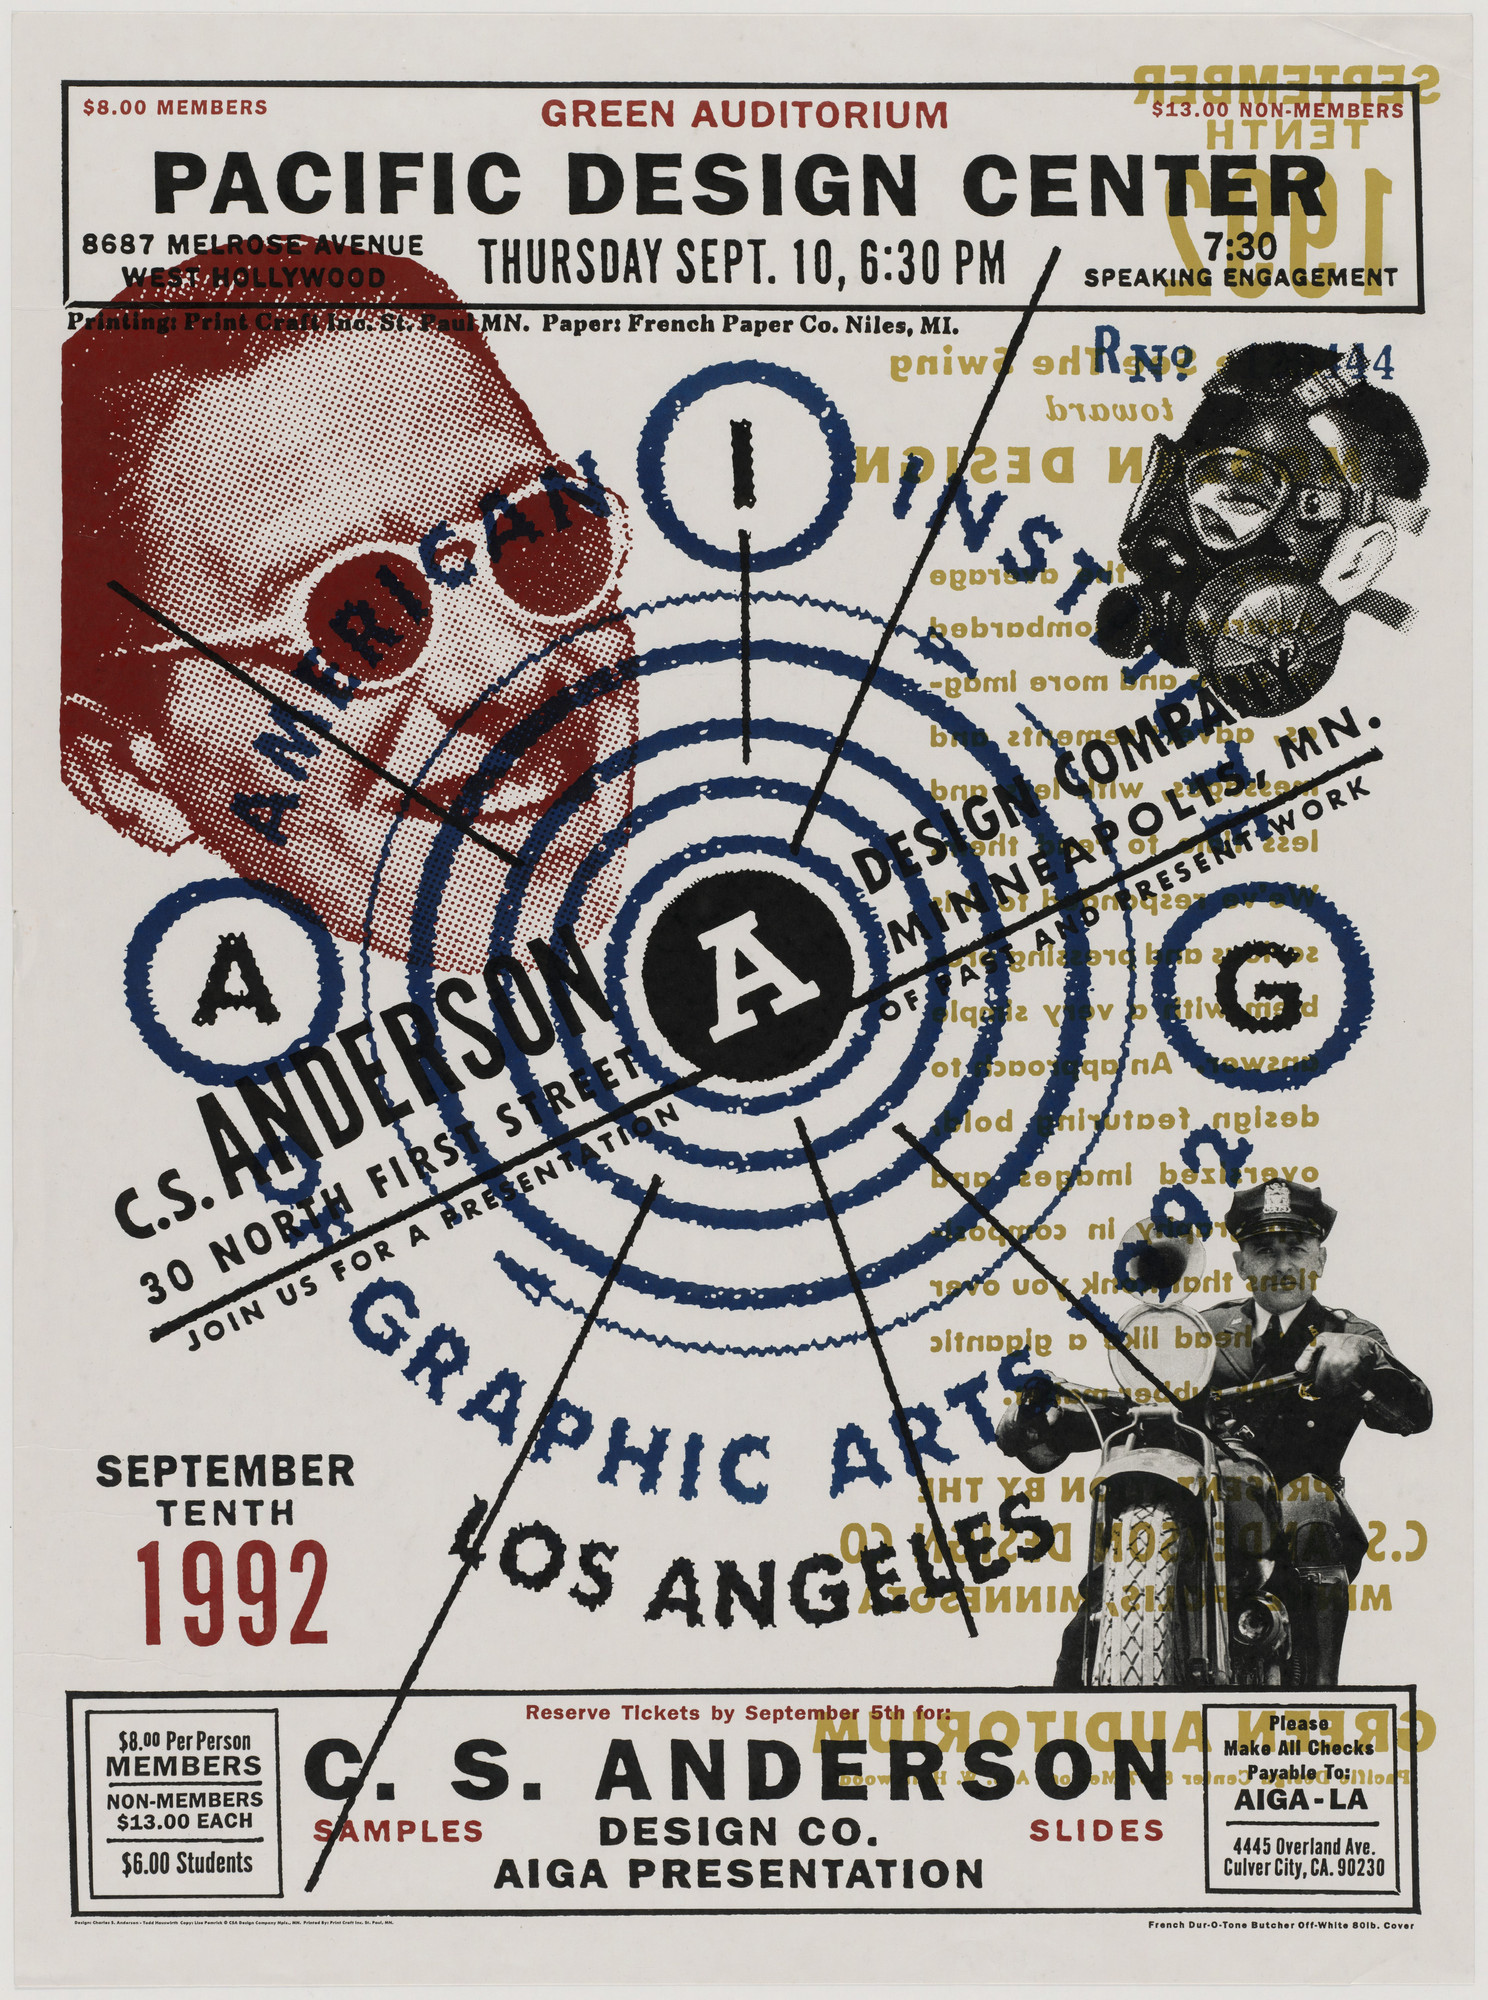 Charles S. Anderson, Todd Piper-Hauswirth. Pacific Design Center - AIGA LA Presentation Poster. August 1992